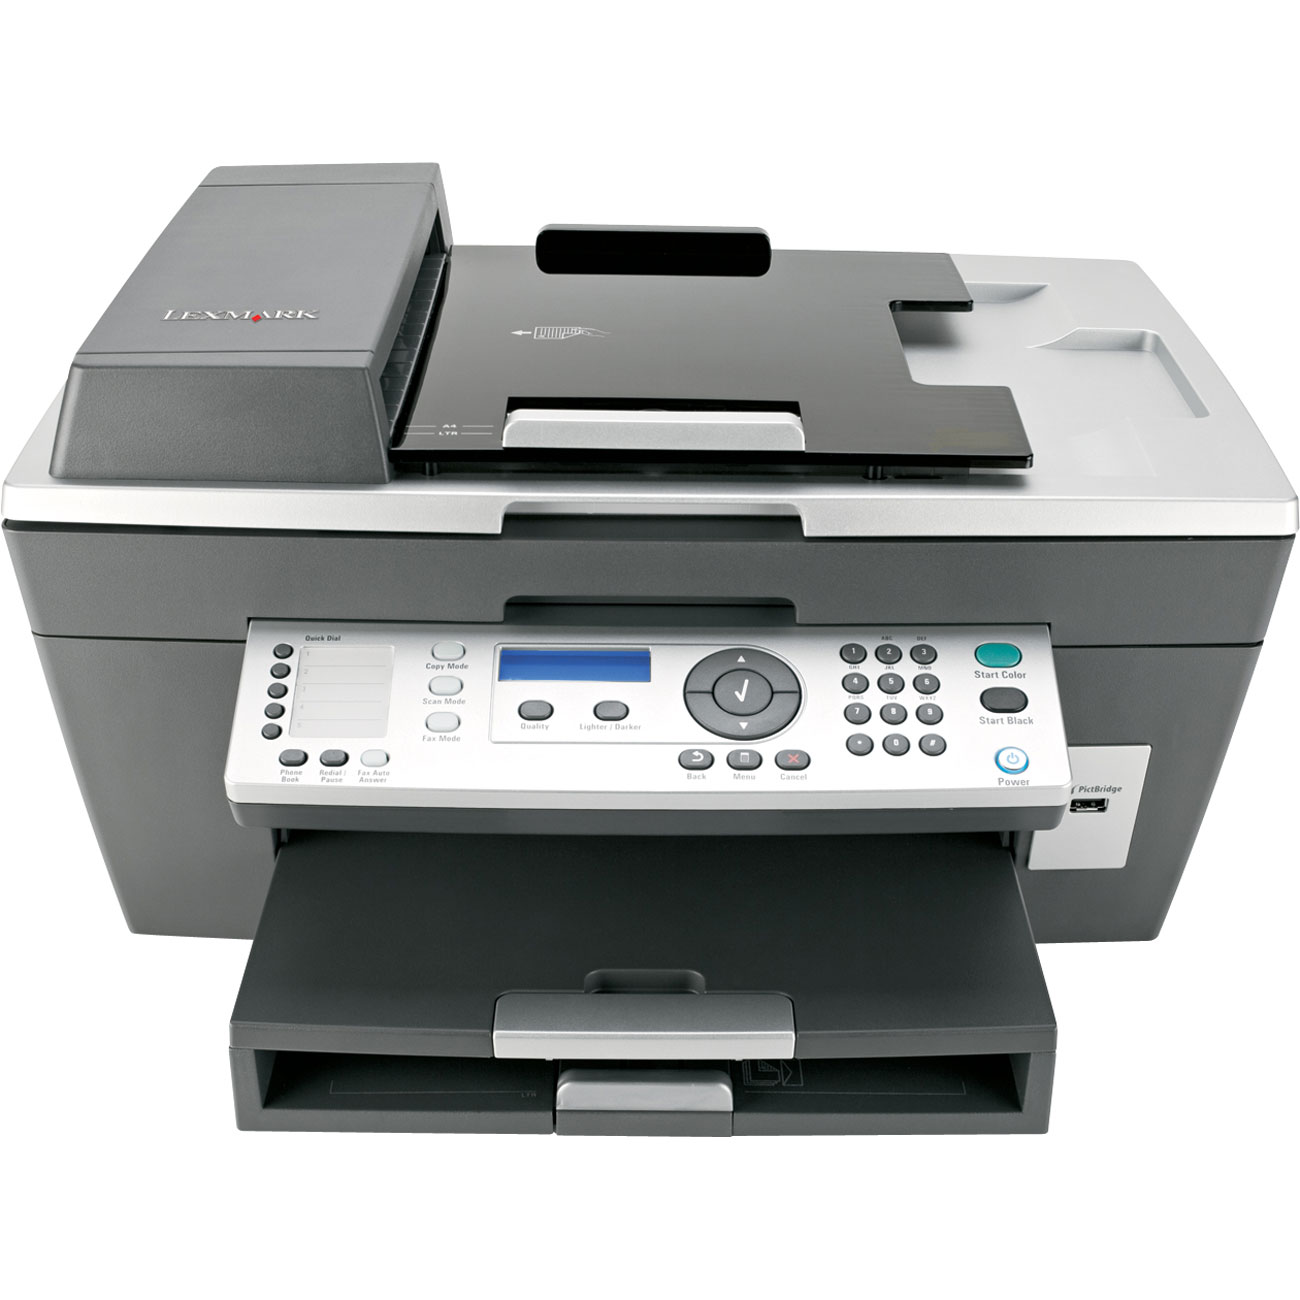 LEXMARK 7350 DRIVERS WINDOWS 7 (2019)